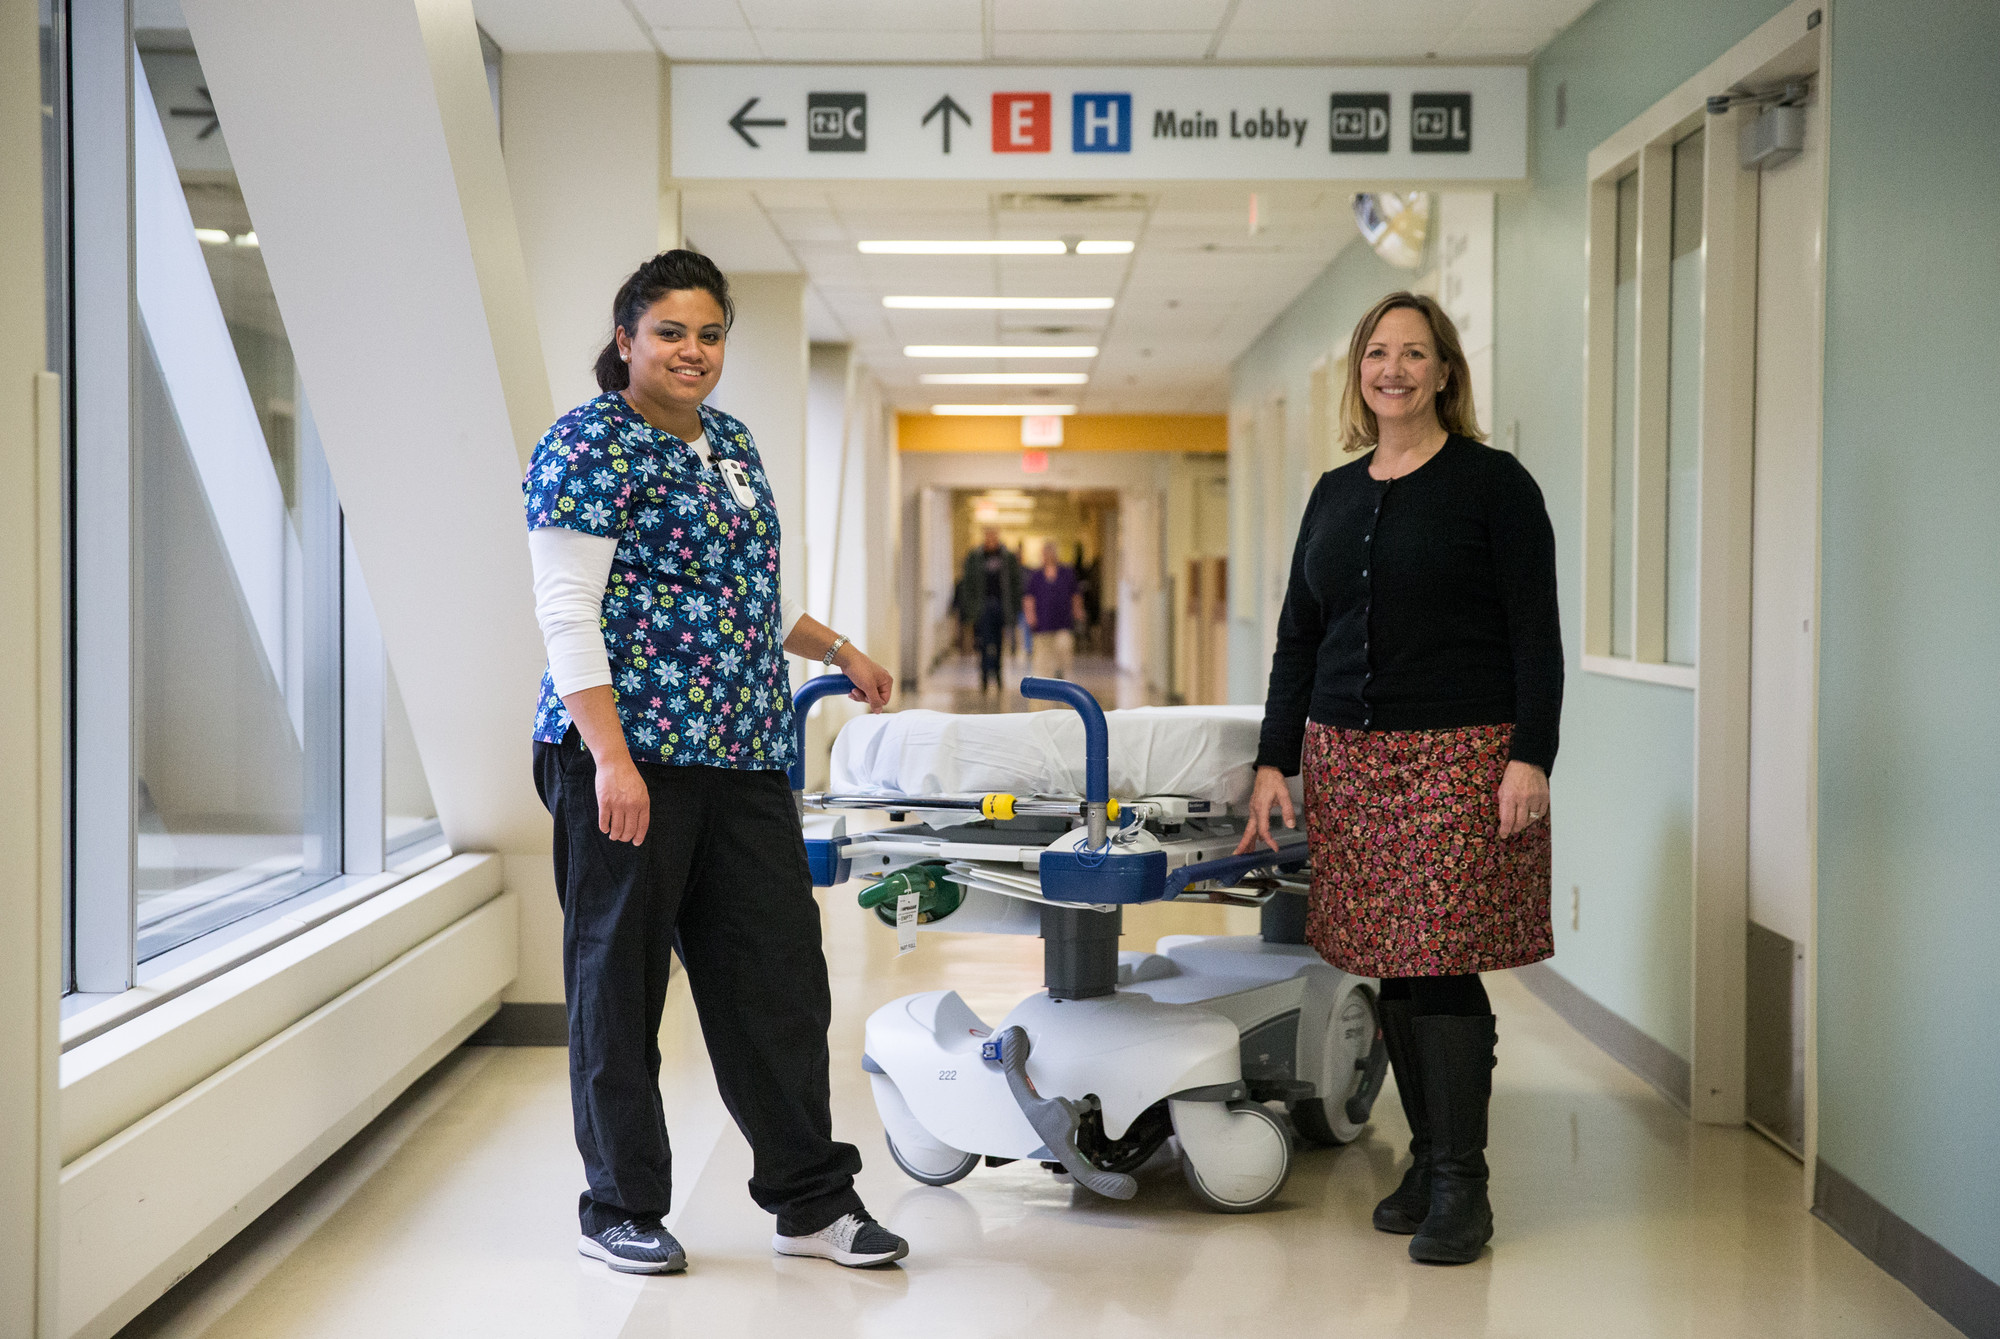 Esther Logan and Martha Witoe, standing next to a gurney in a hospital corridor.